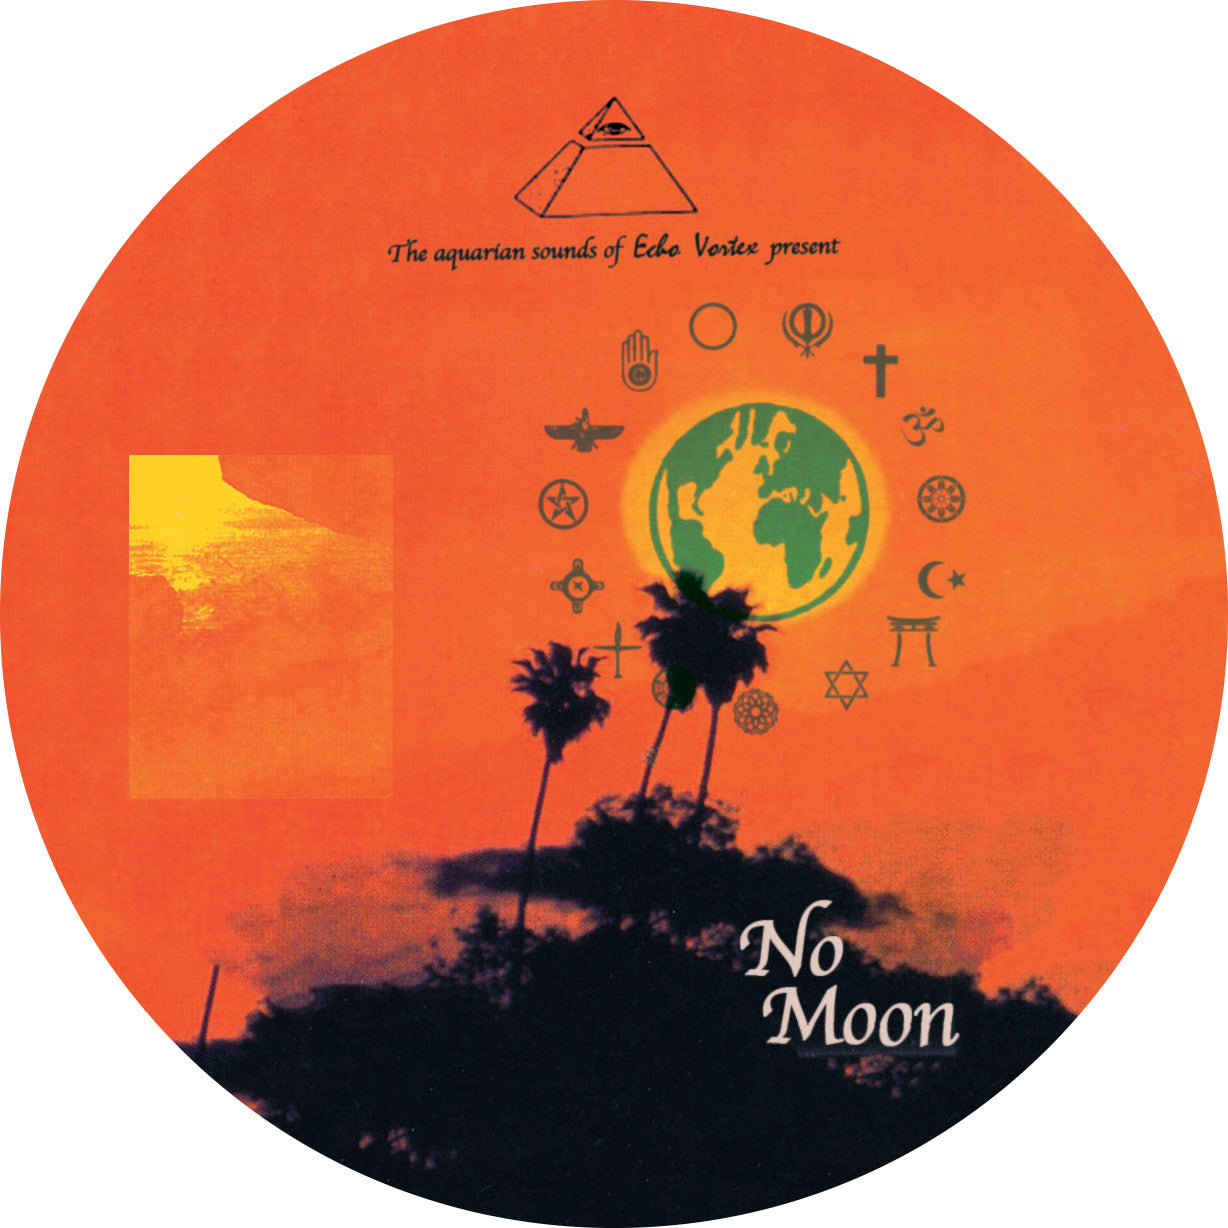 No Moon - Prett Fly For A Lo Fi , Vinyl - Echo Vortex, Unearthed Sounds - 1